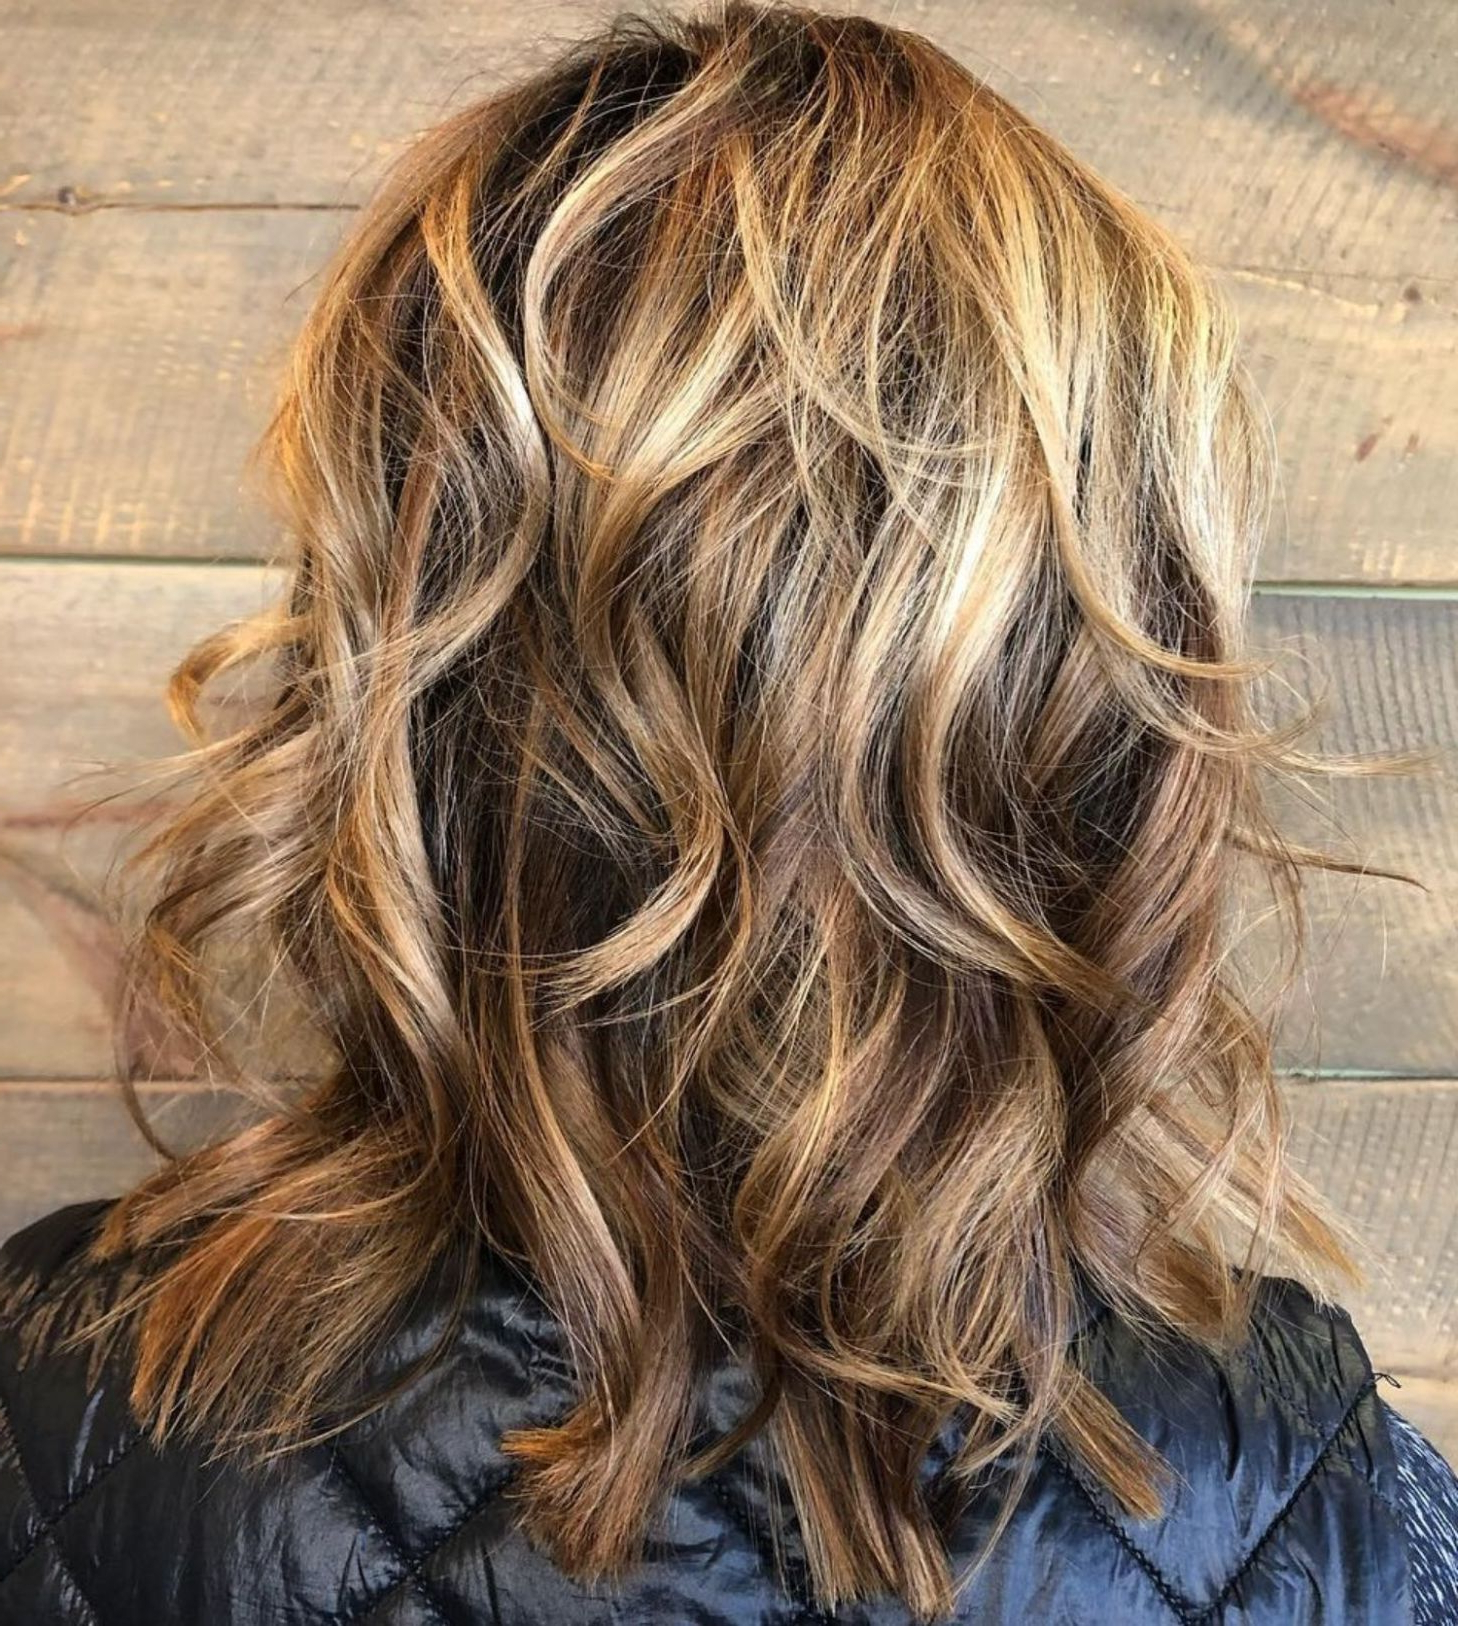 60 Best Variations Of A Medium Shag Haircut For Your Throughout Flawless Curls Shag Haircuts (View 6 of 20)